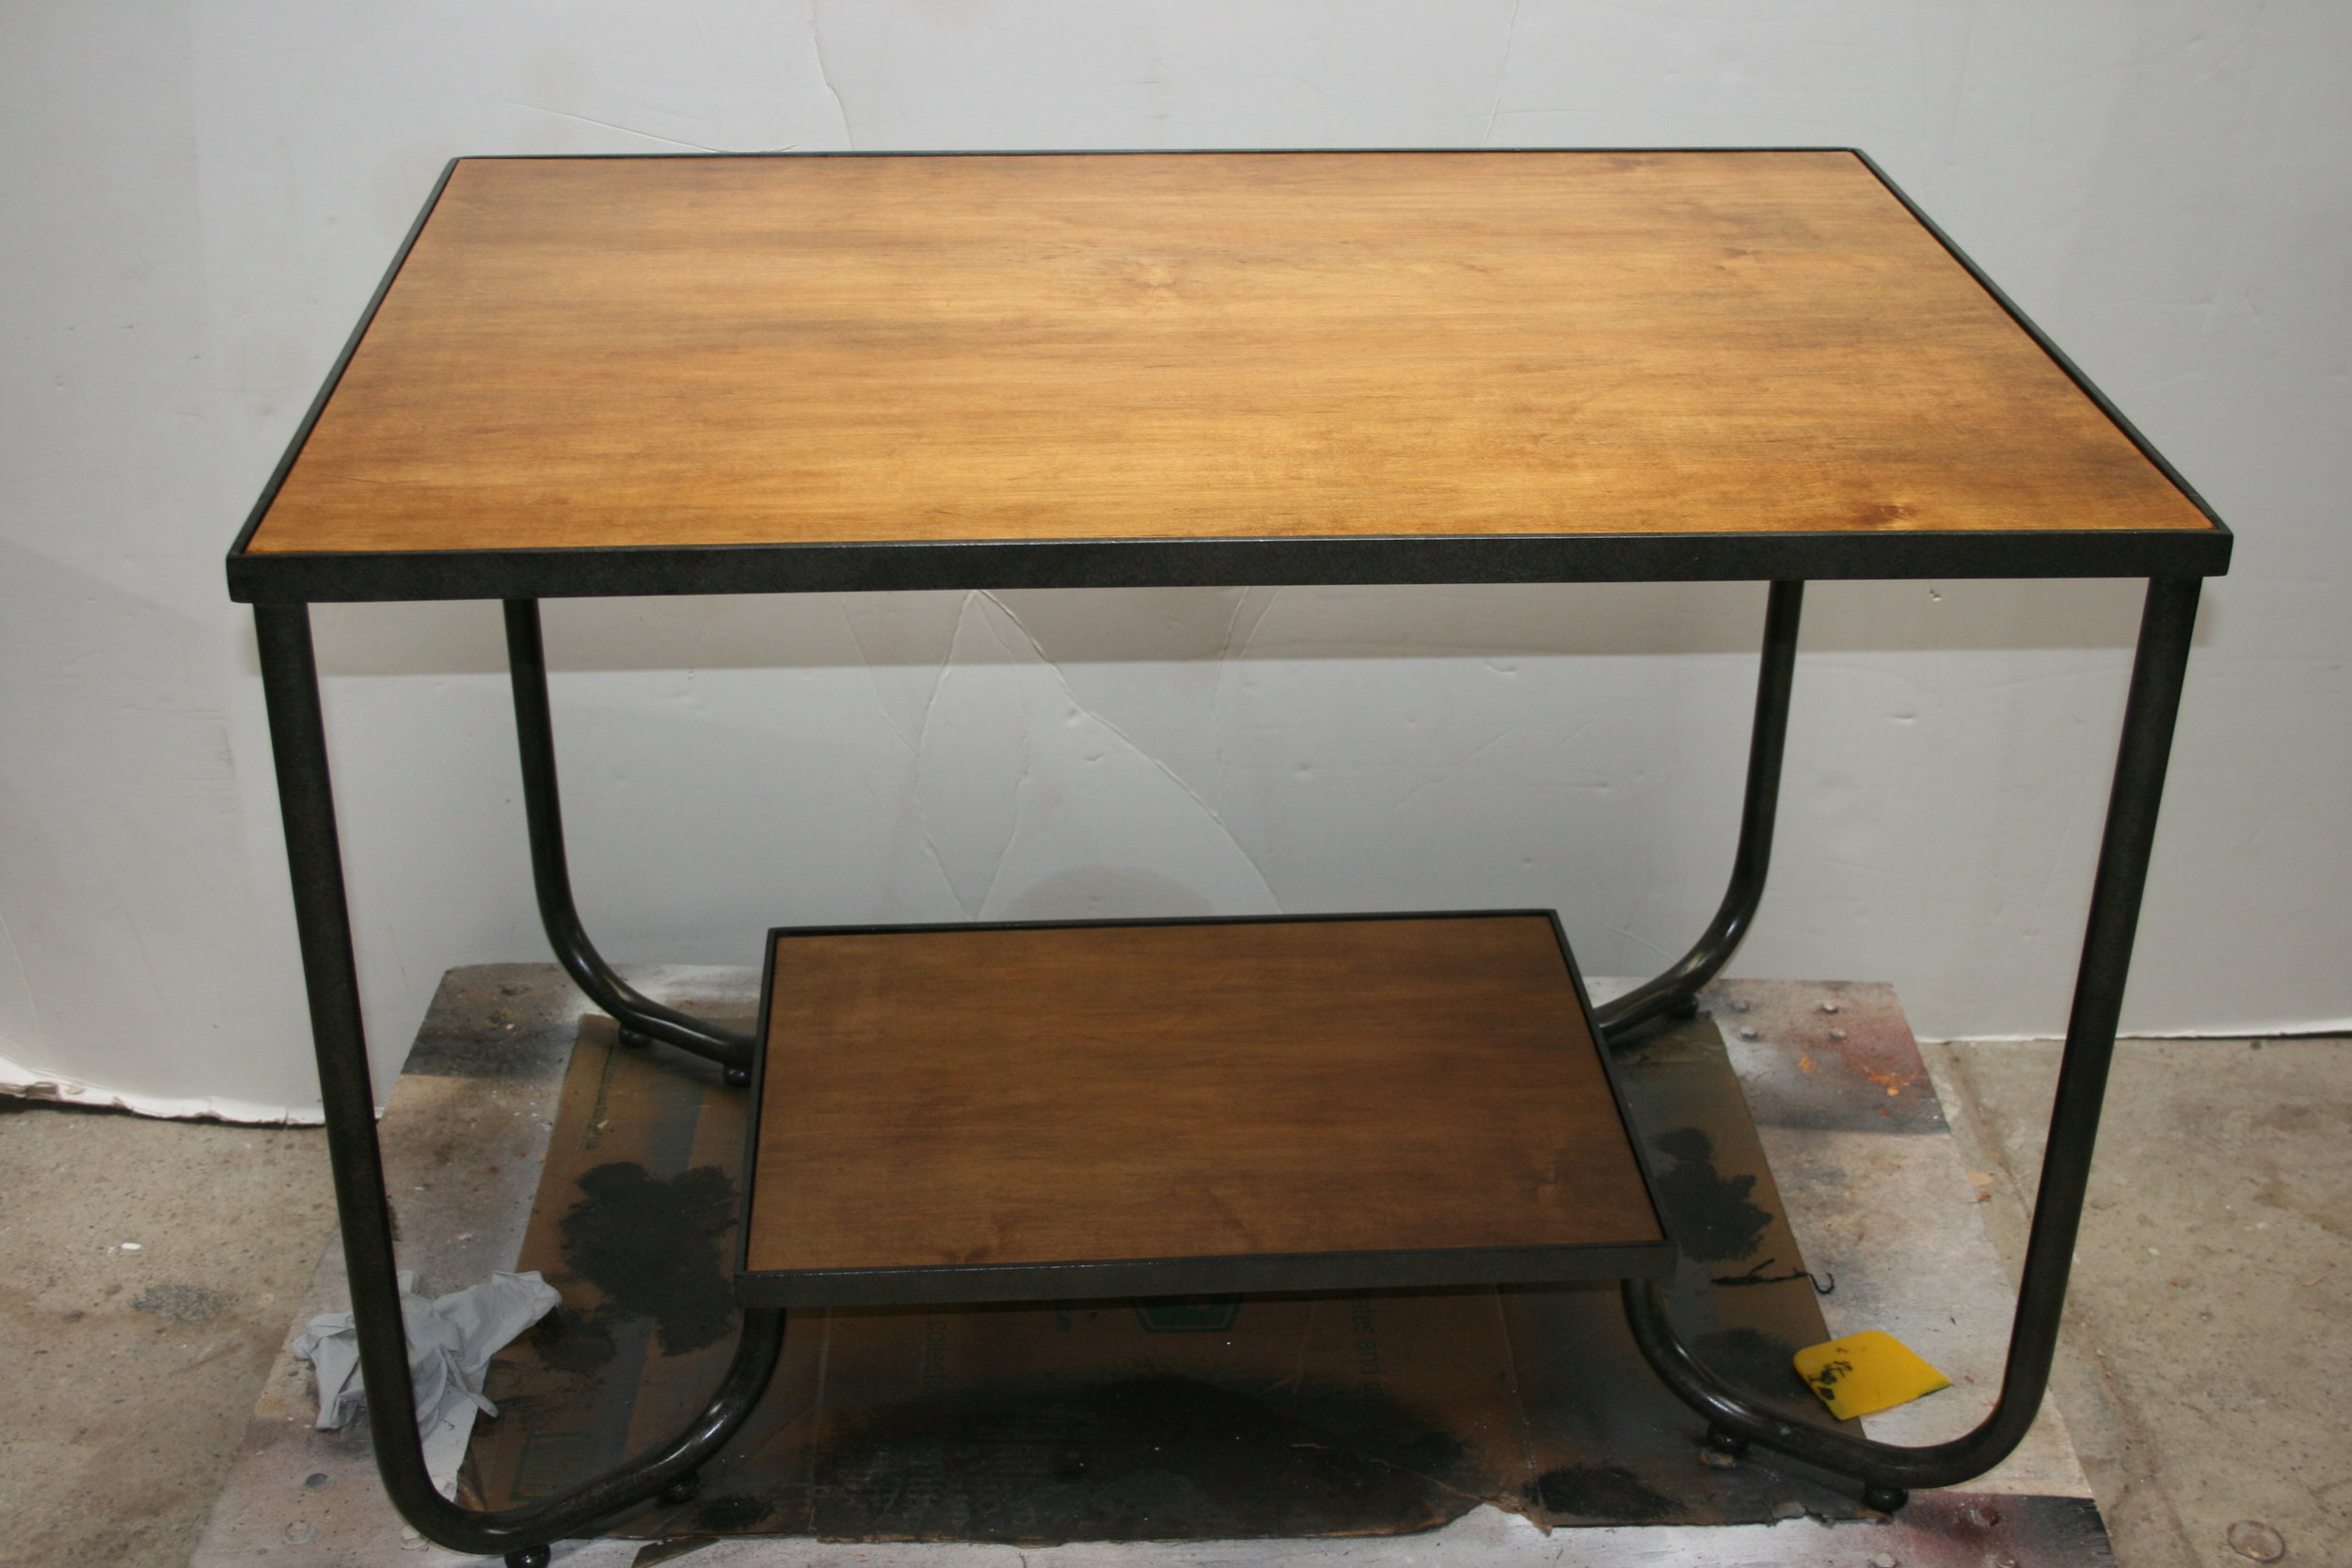 Rosselli Koopam Iron & Wood Table 1.JPG